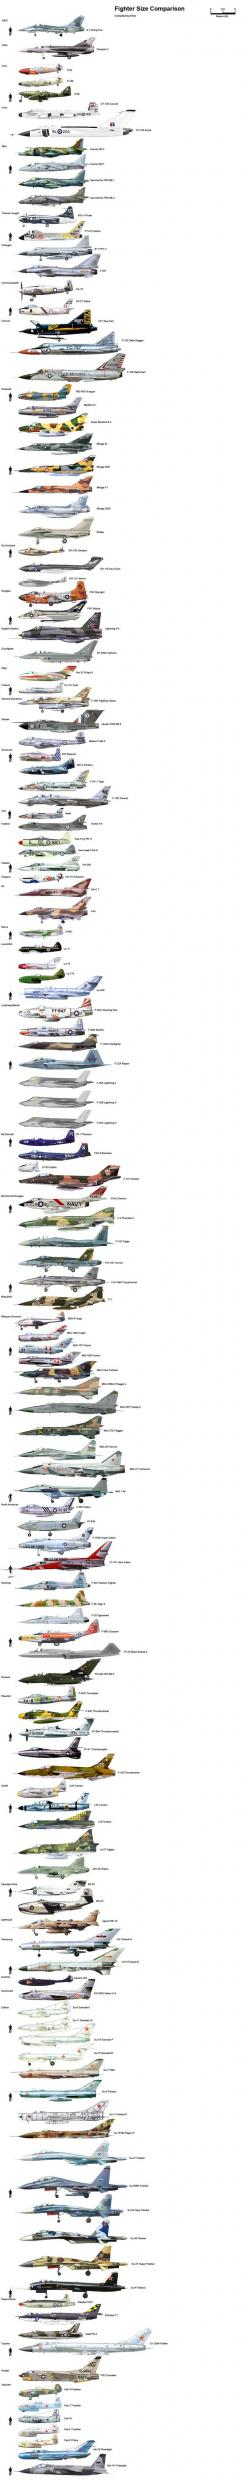 pinterest.com/fra411 #Plane Scales...cool!: Fighter Planes Jets, International Plane, Aircraft, War Planes, Fighter Jet, Airplanes ️, Plane Comparisons, Military Airplane